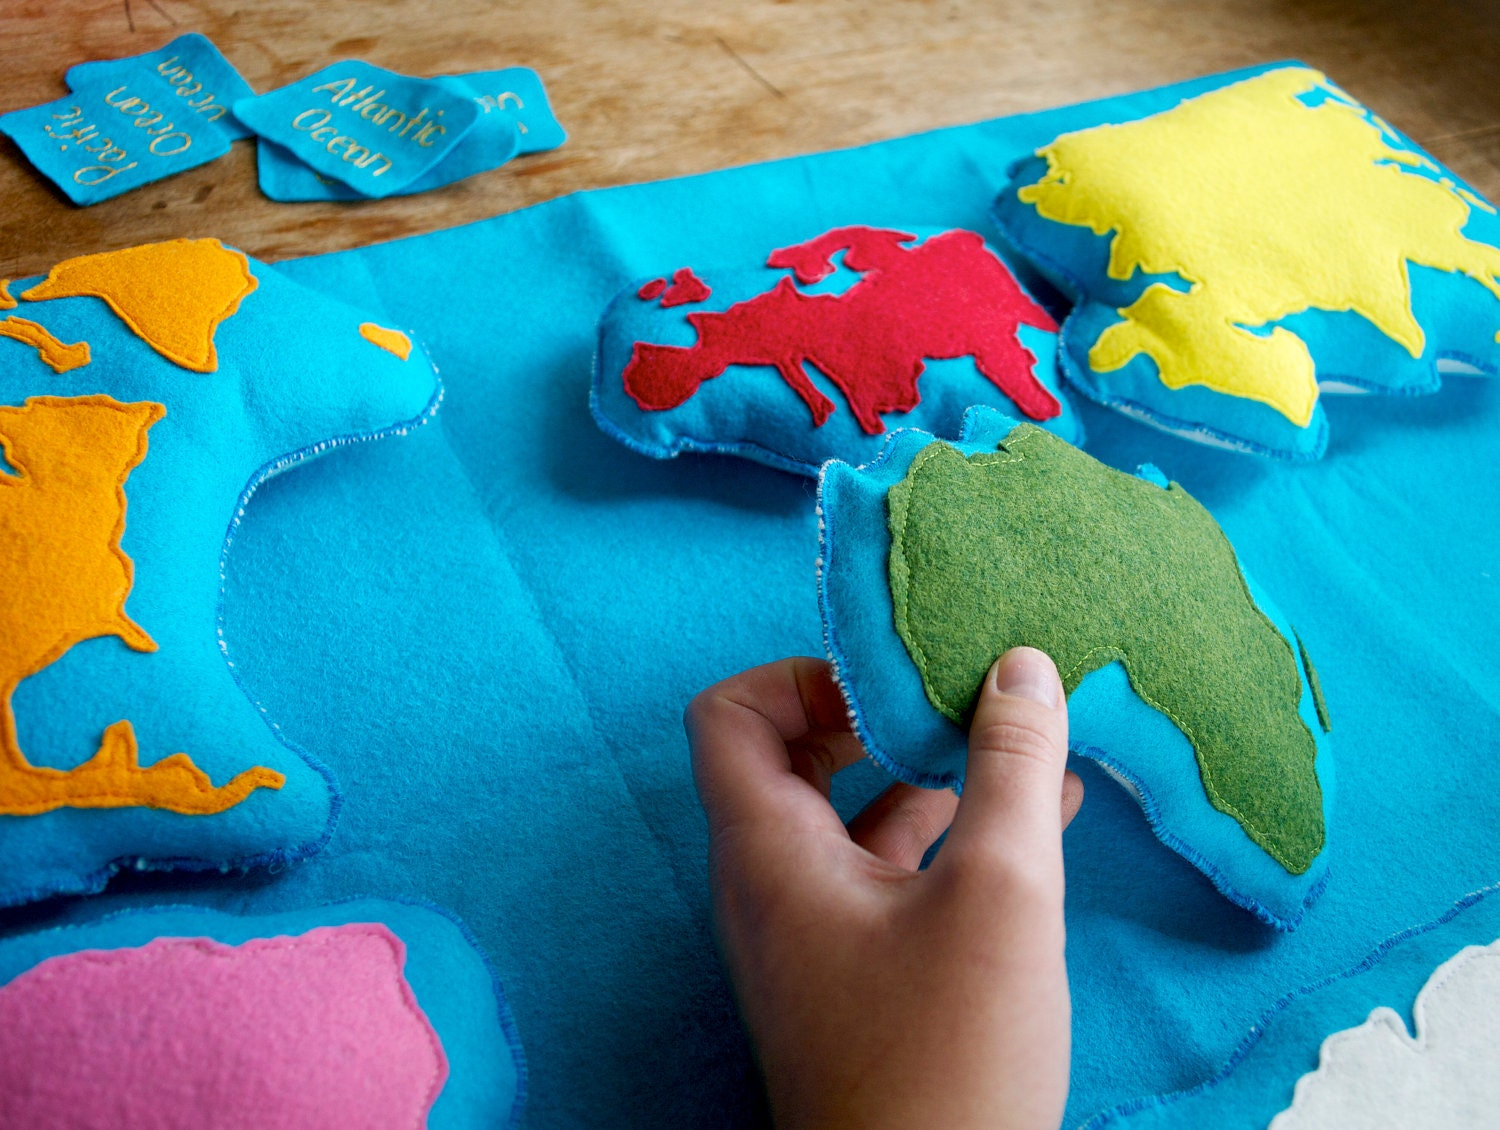 Handmade Montessori Work - Wool Felt Continent Geography learning tool from The Handmade Classroom - TheHandmadeClassroom